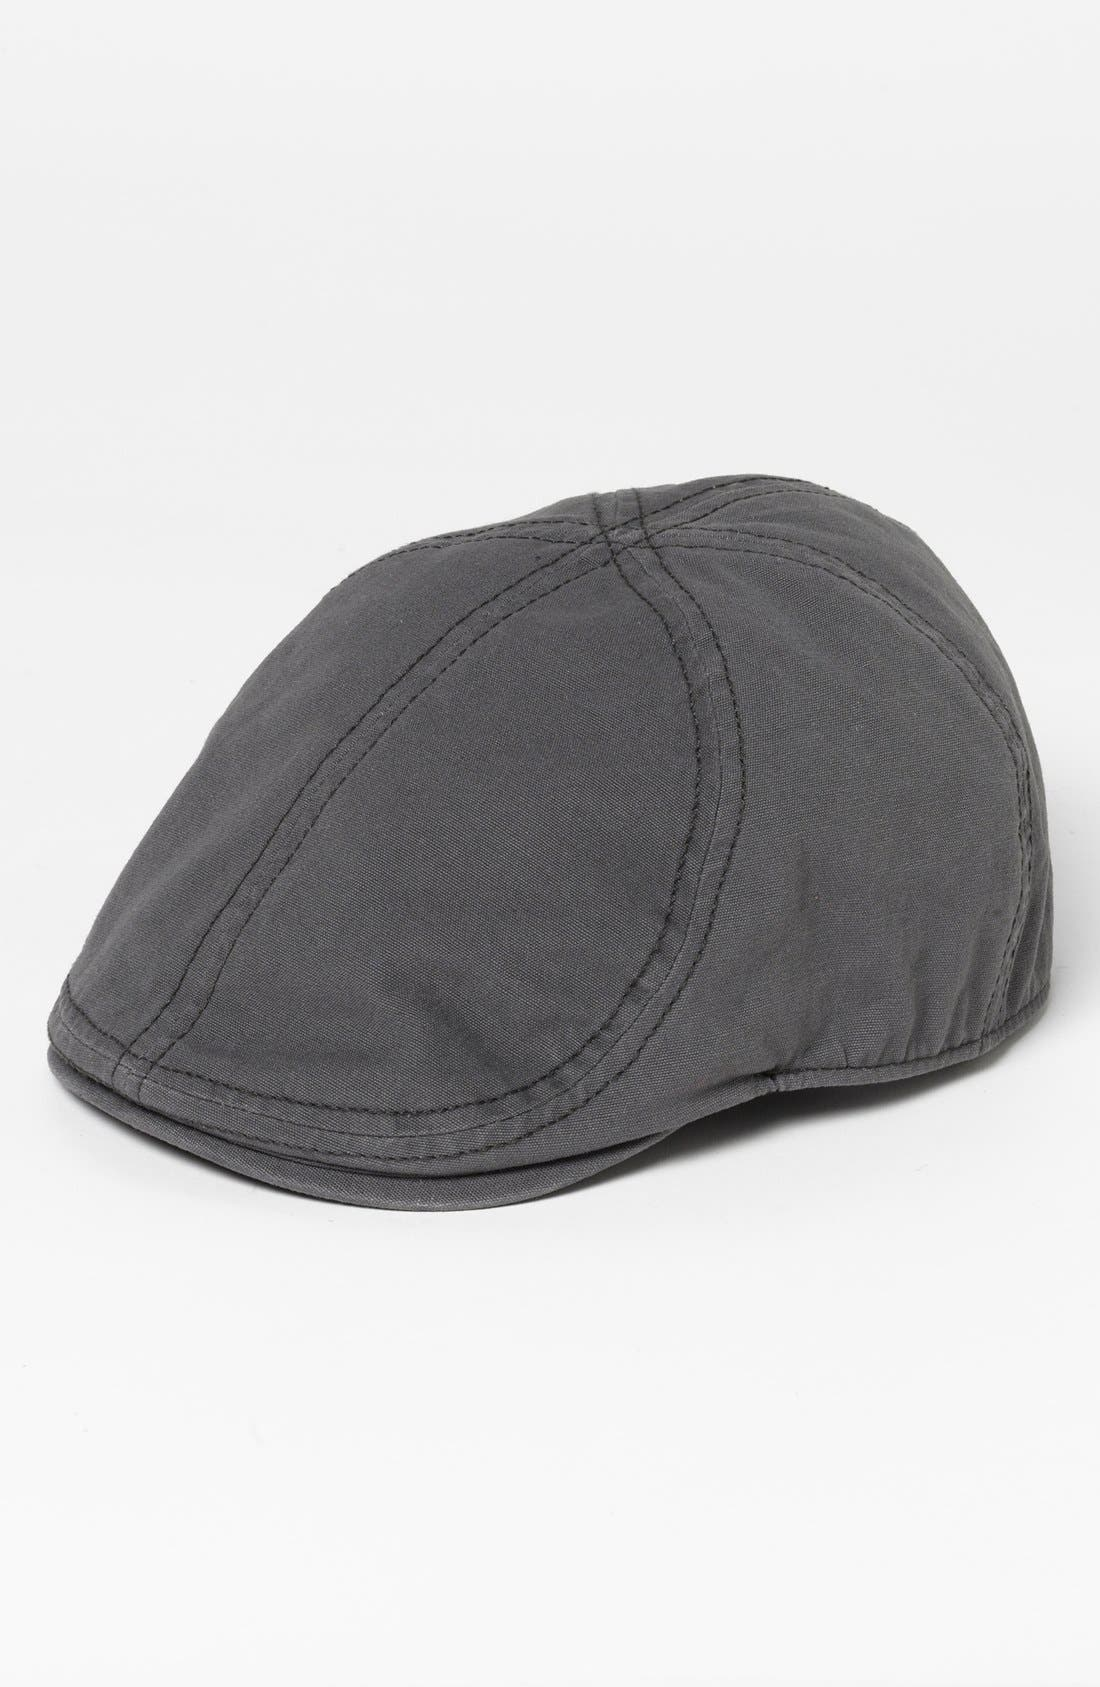 Alternate Image 1 Selected - Goorin Brothers 'Ari Halo Ivy' Driving Cap